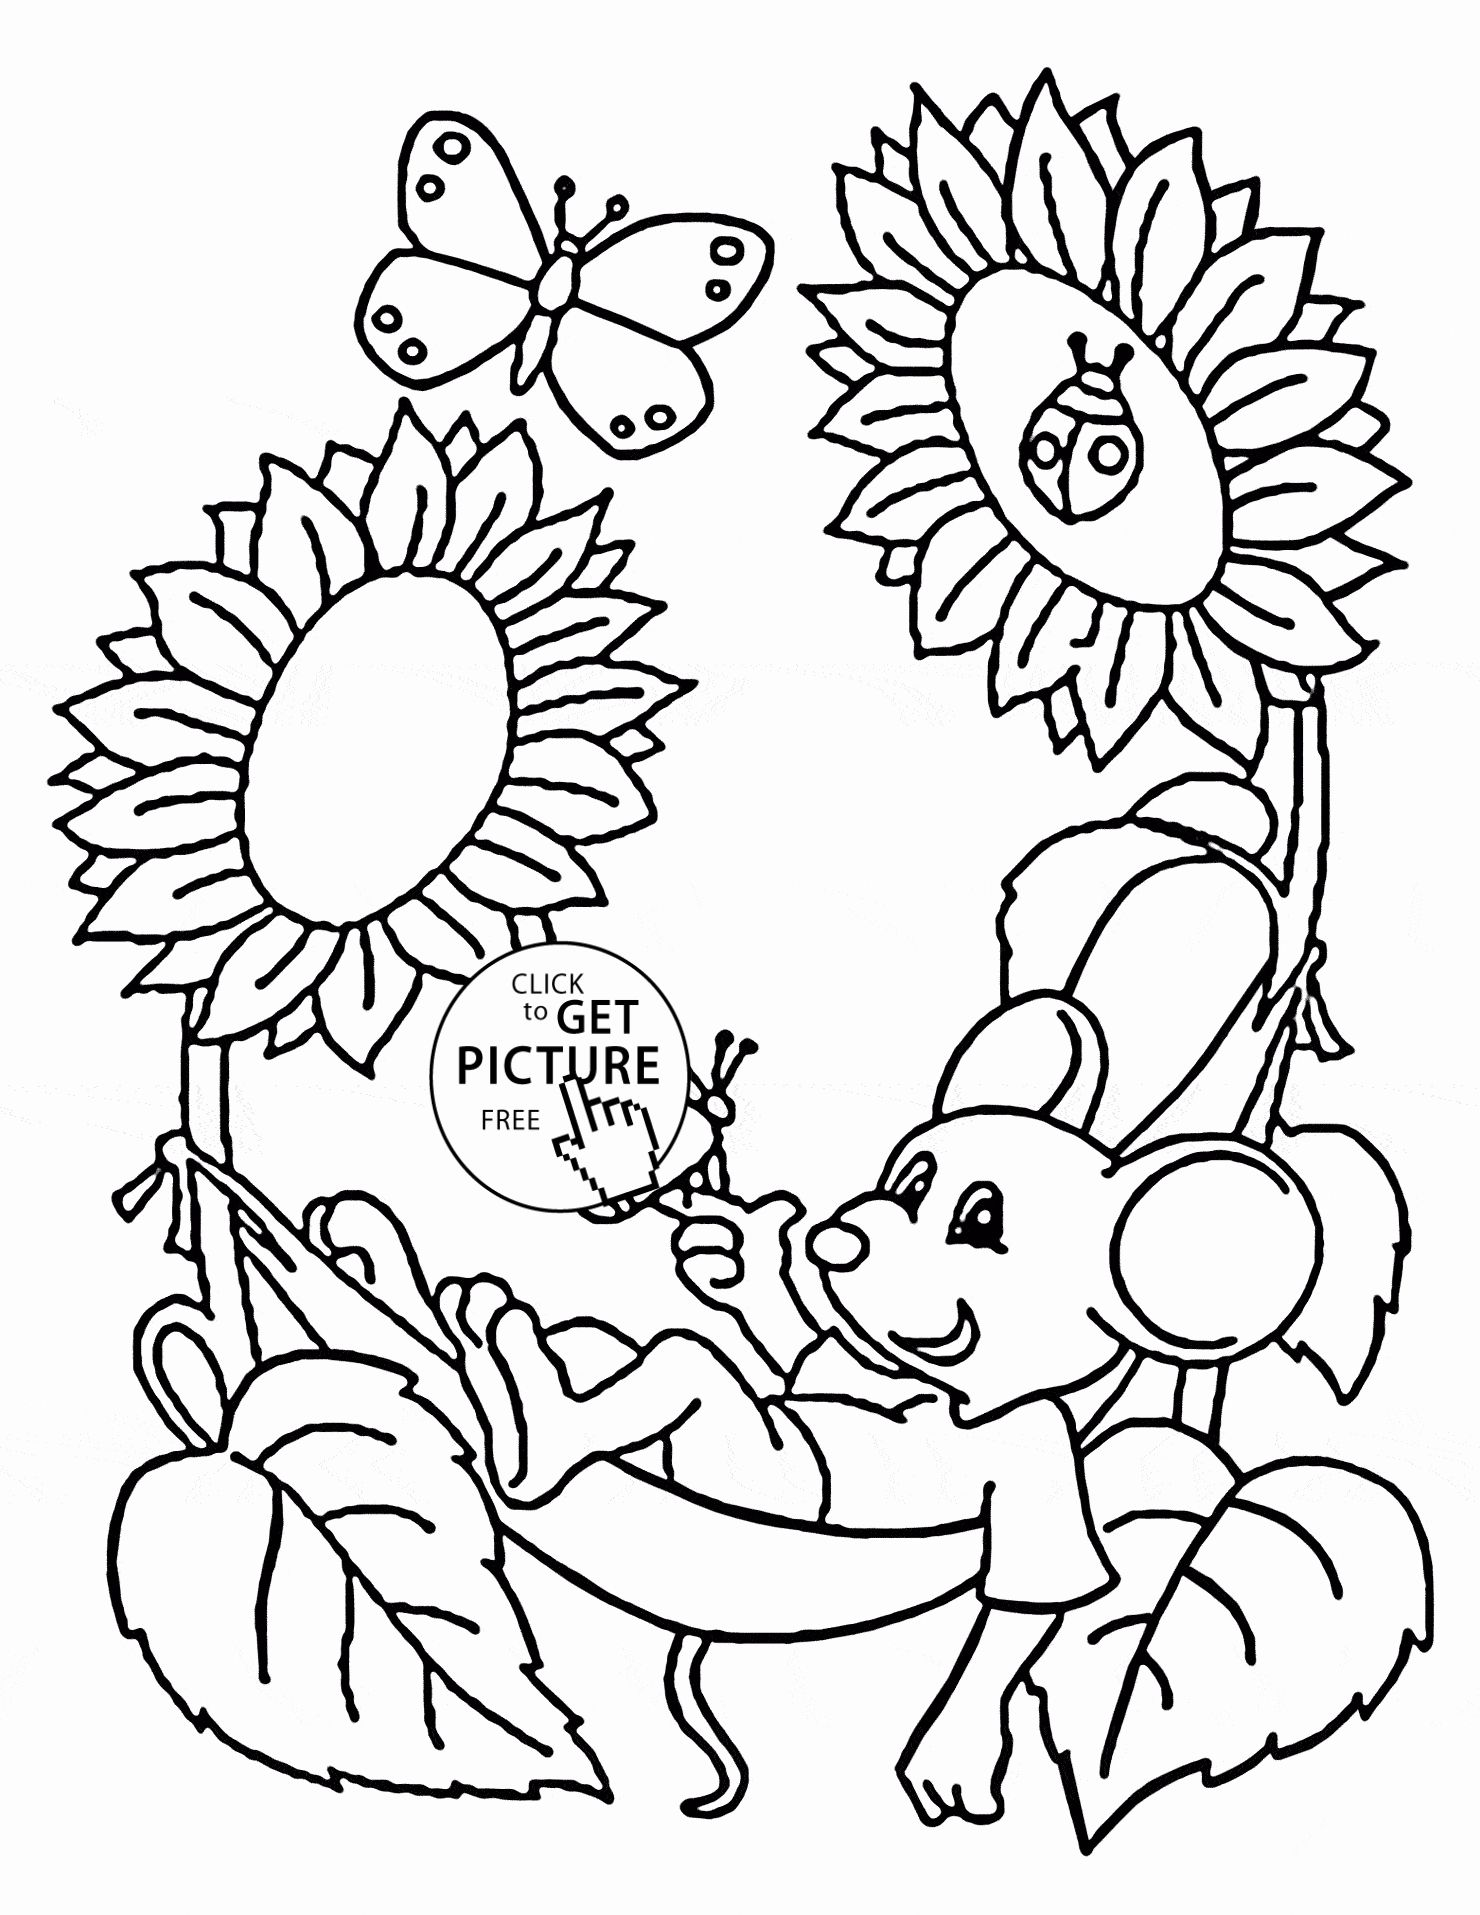 Summer Coloring Pages for Preschool New Cute Mouse and